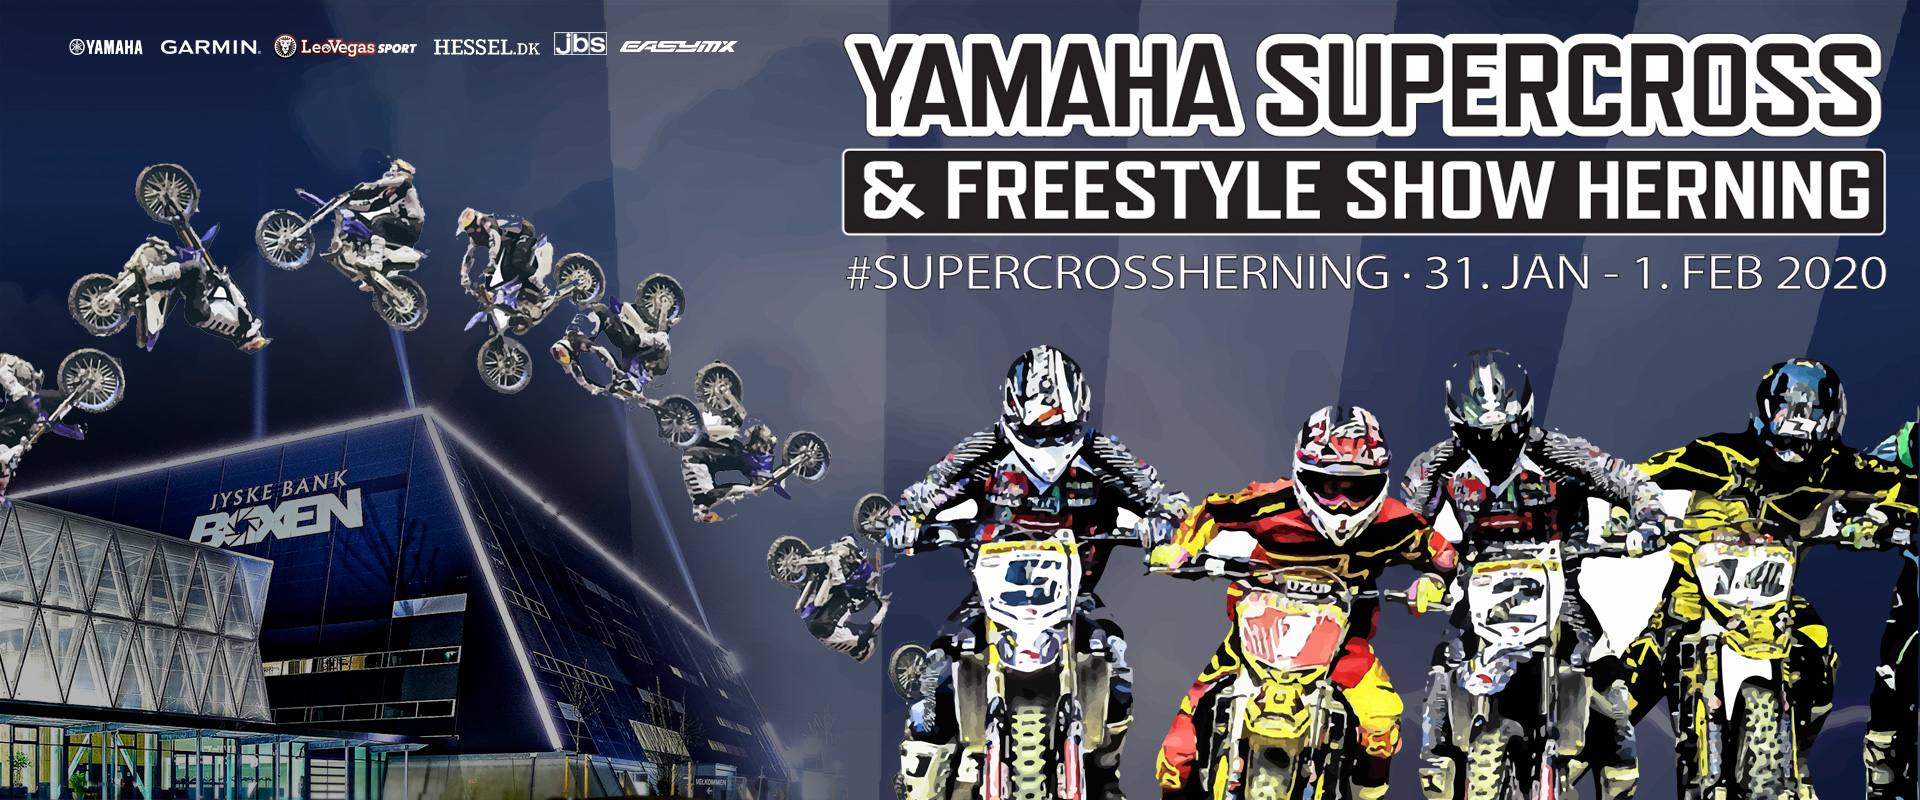 Yamaha SuperCross & Freestyle Show